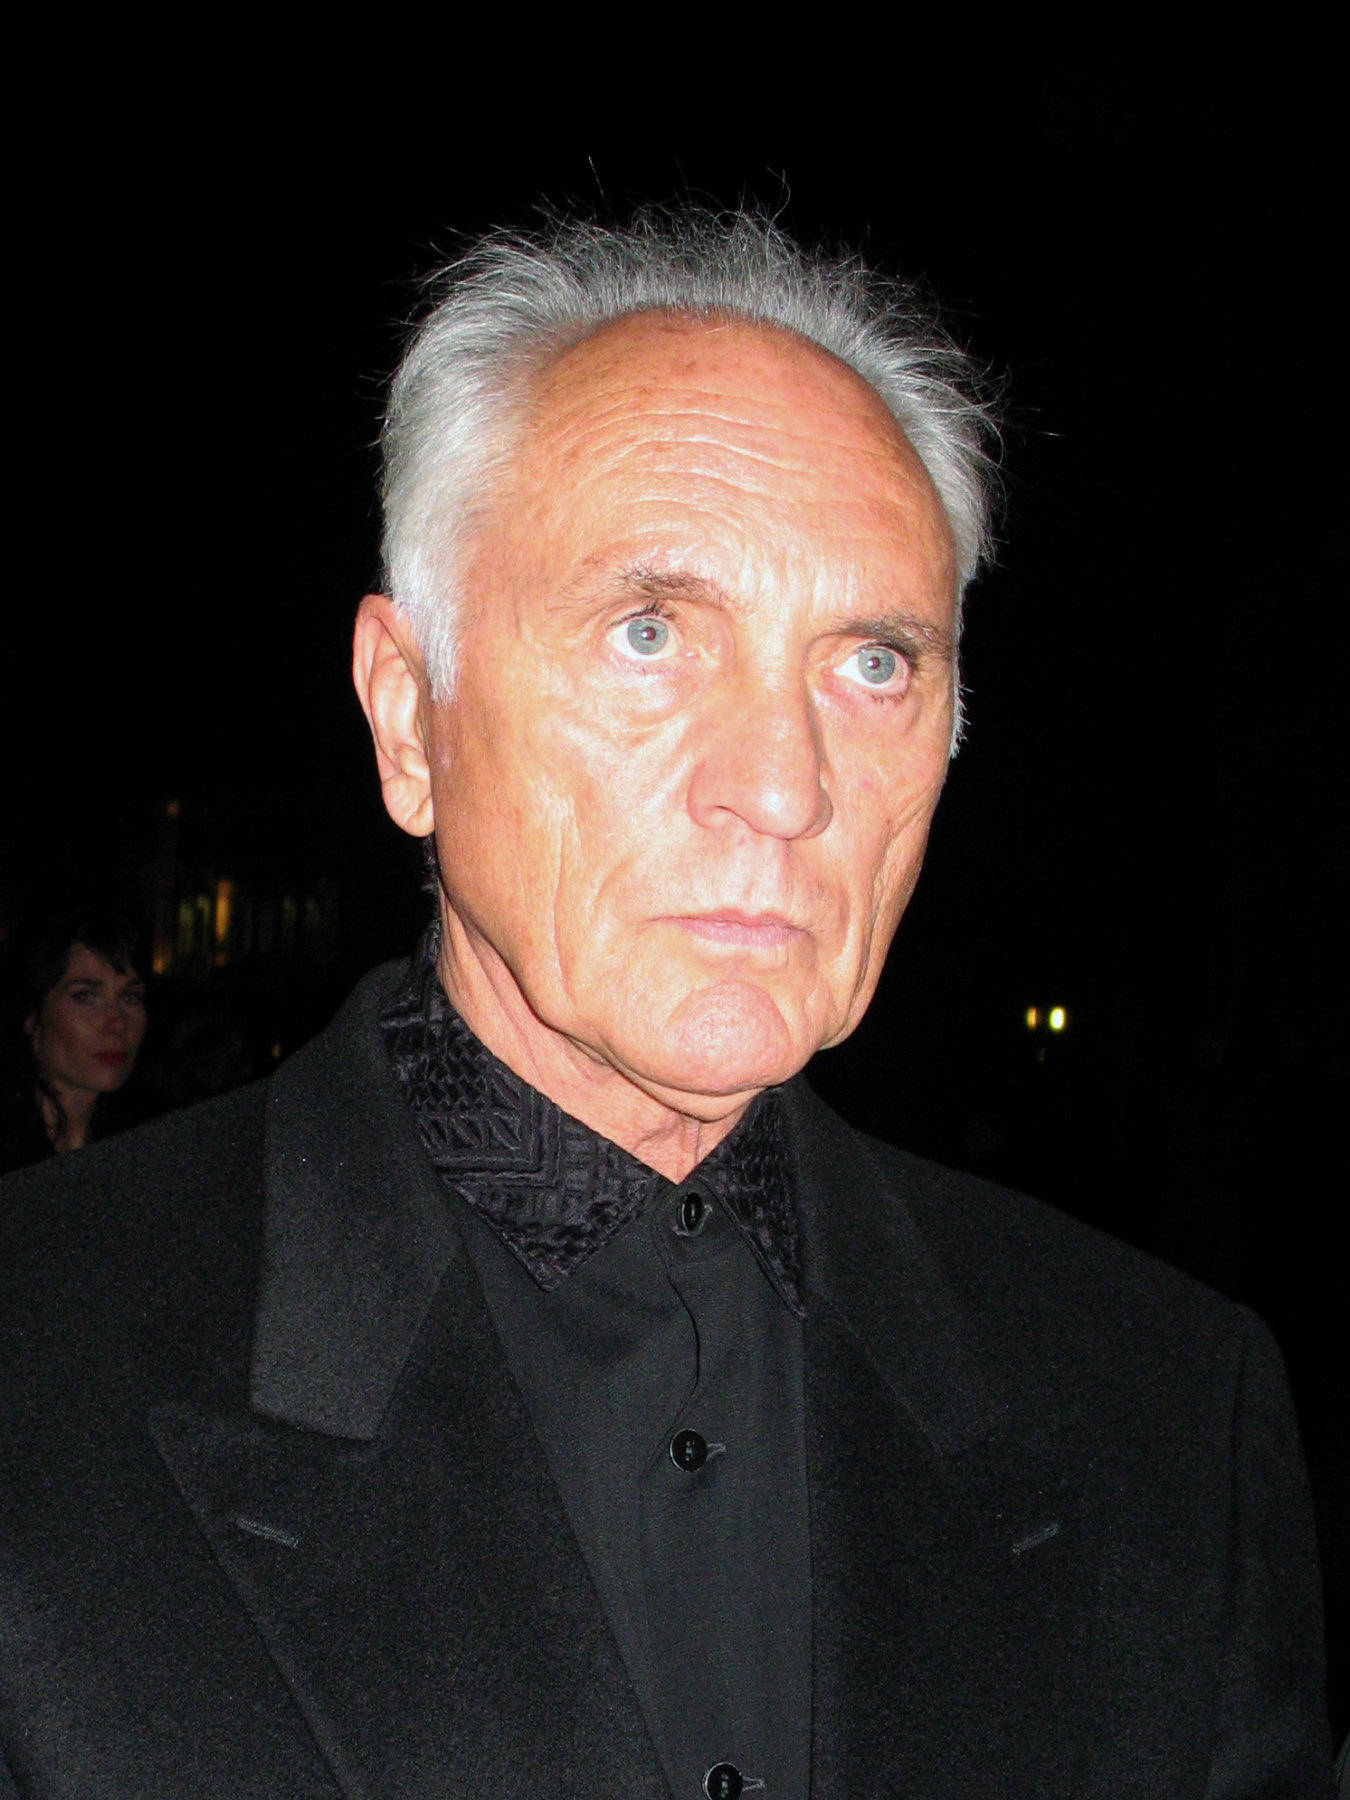 Photo Terence Stamp via Opendata BNF